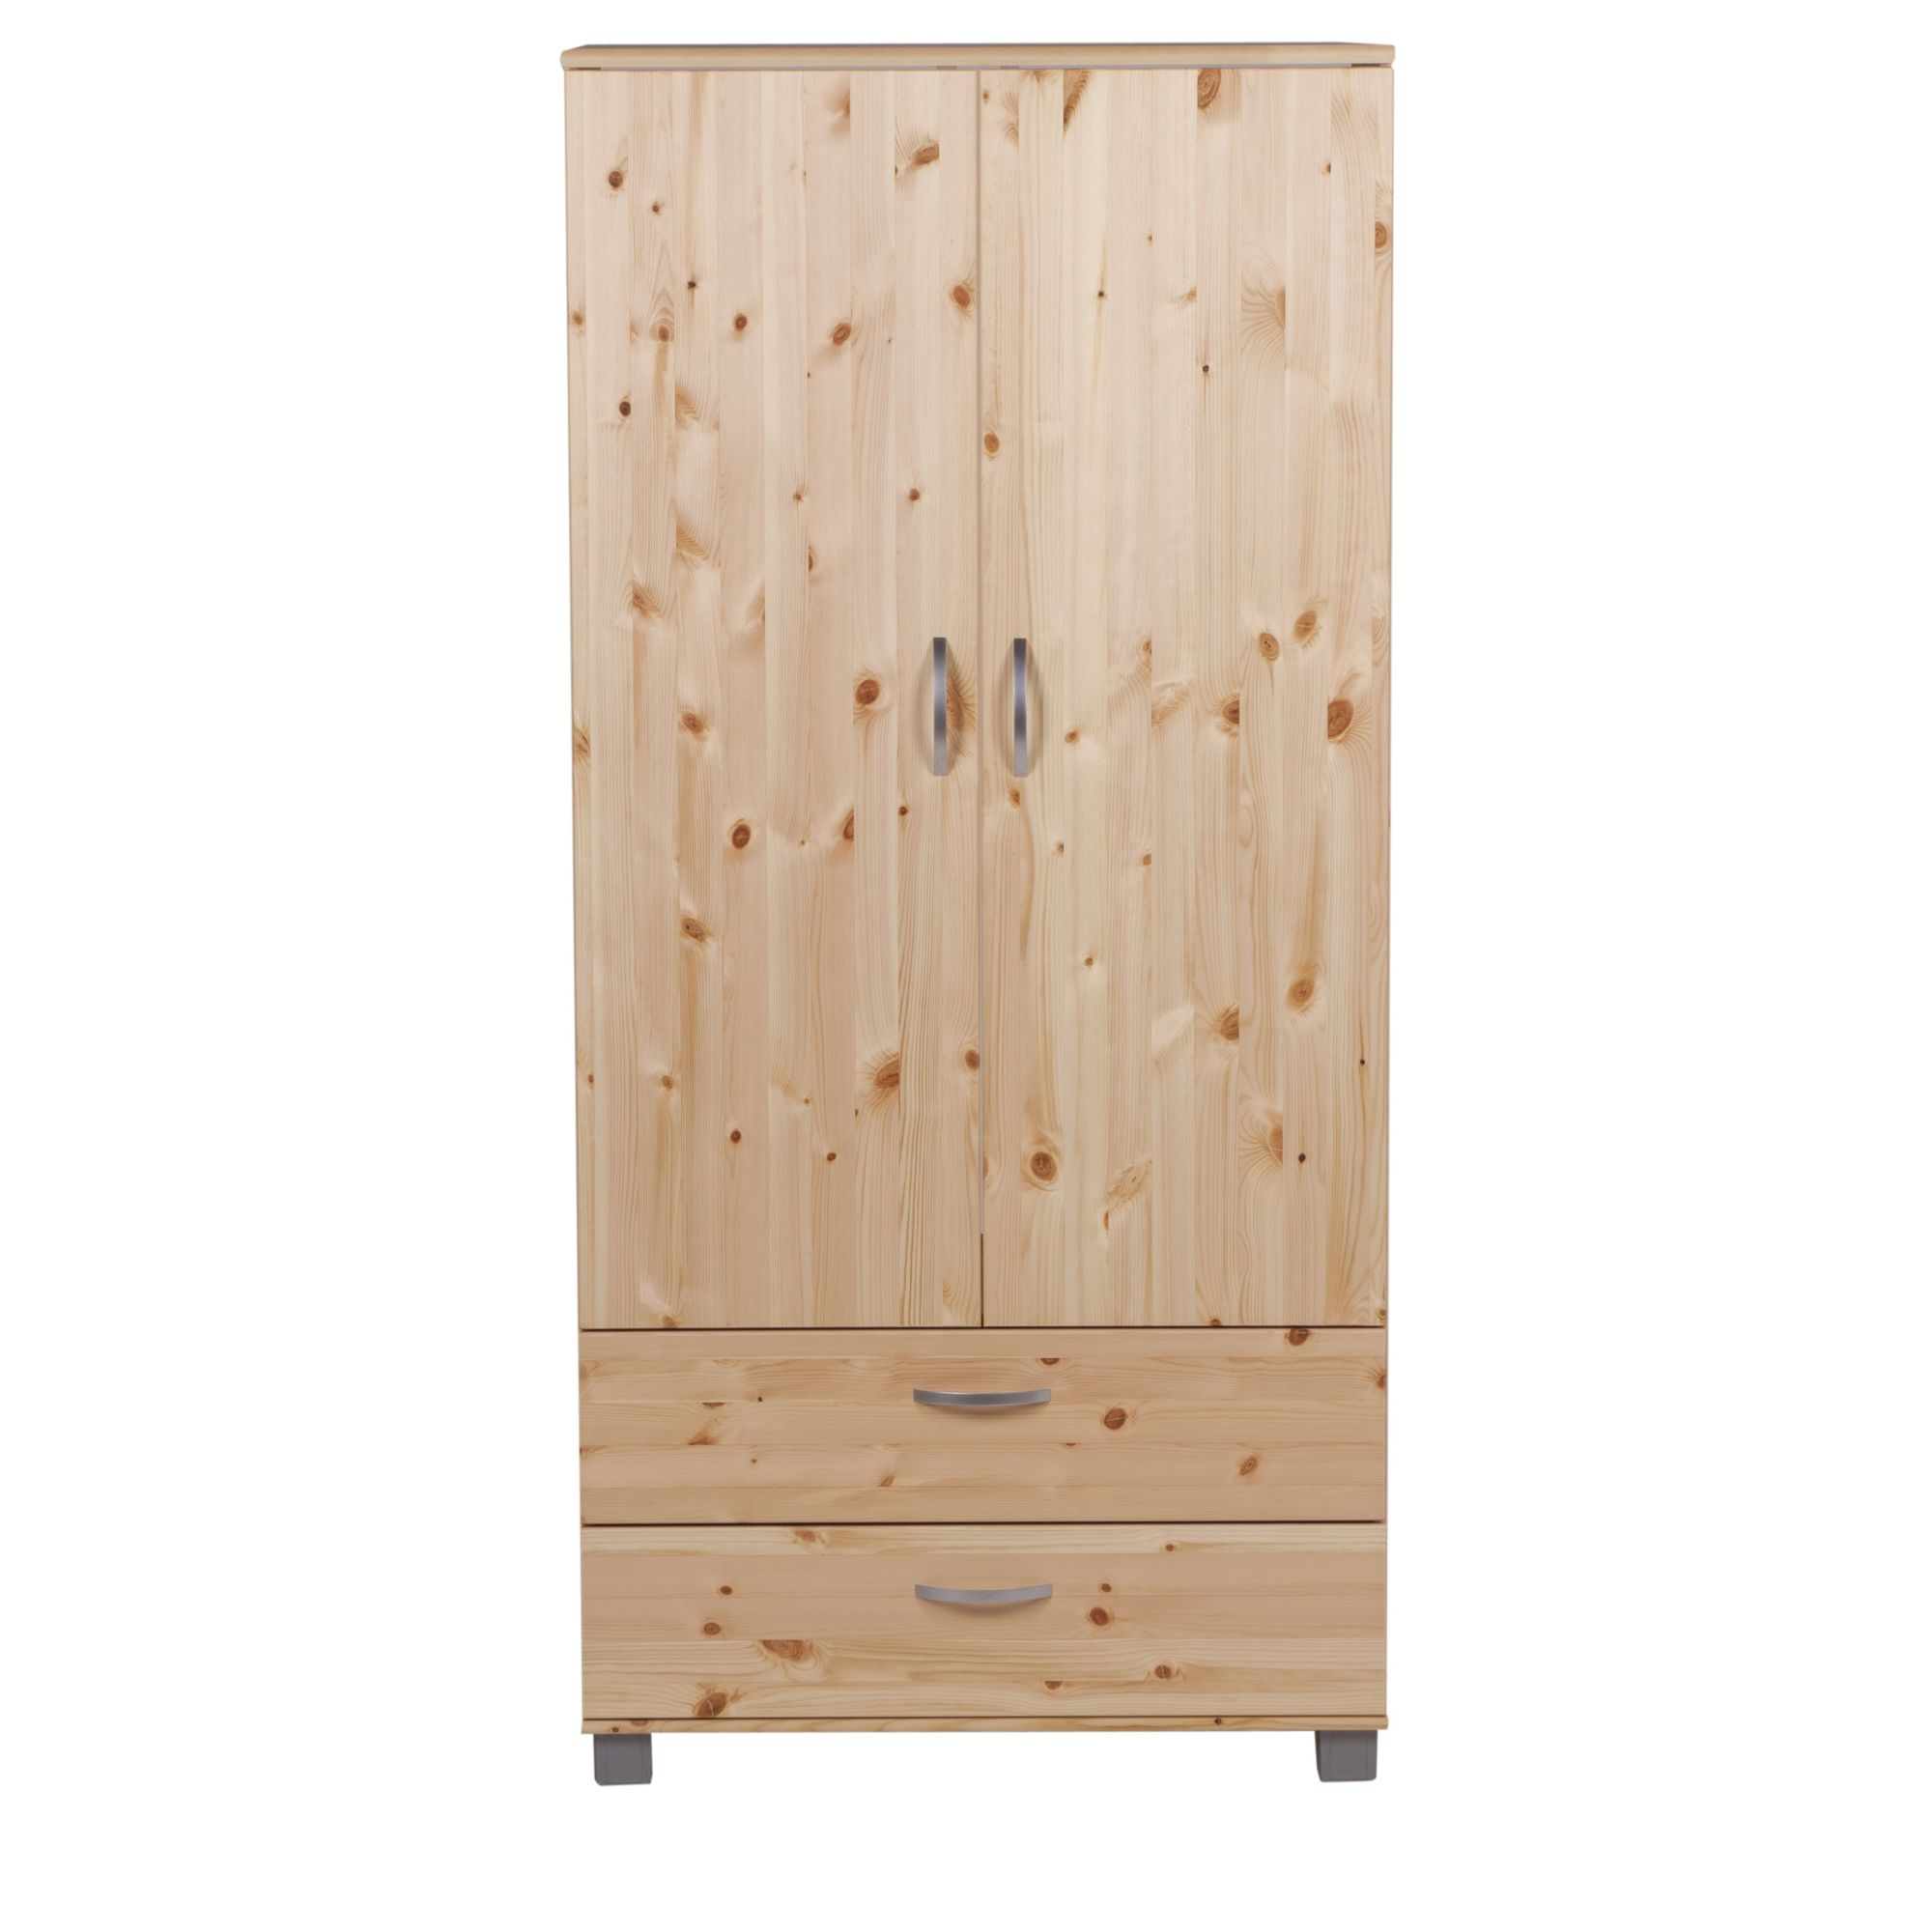 Thuka Trendy Two Door Two Drawer Wardrobe - Blue - Natural Lacquer at Tesco Direct